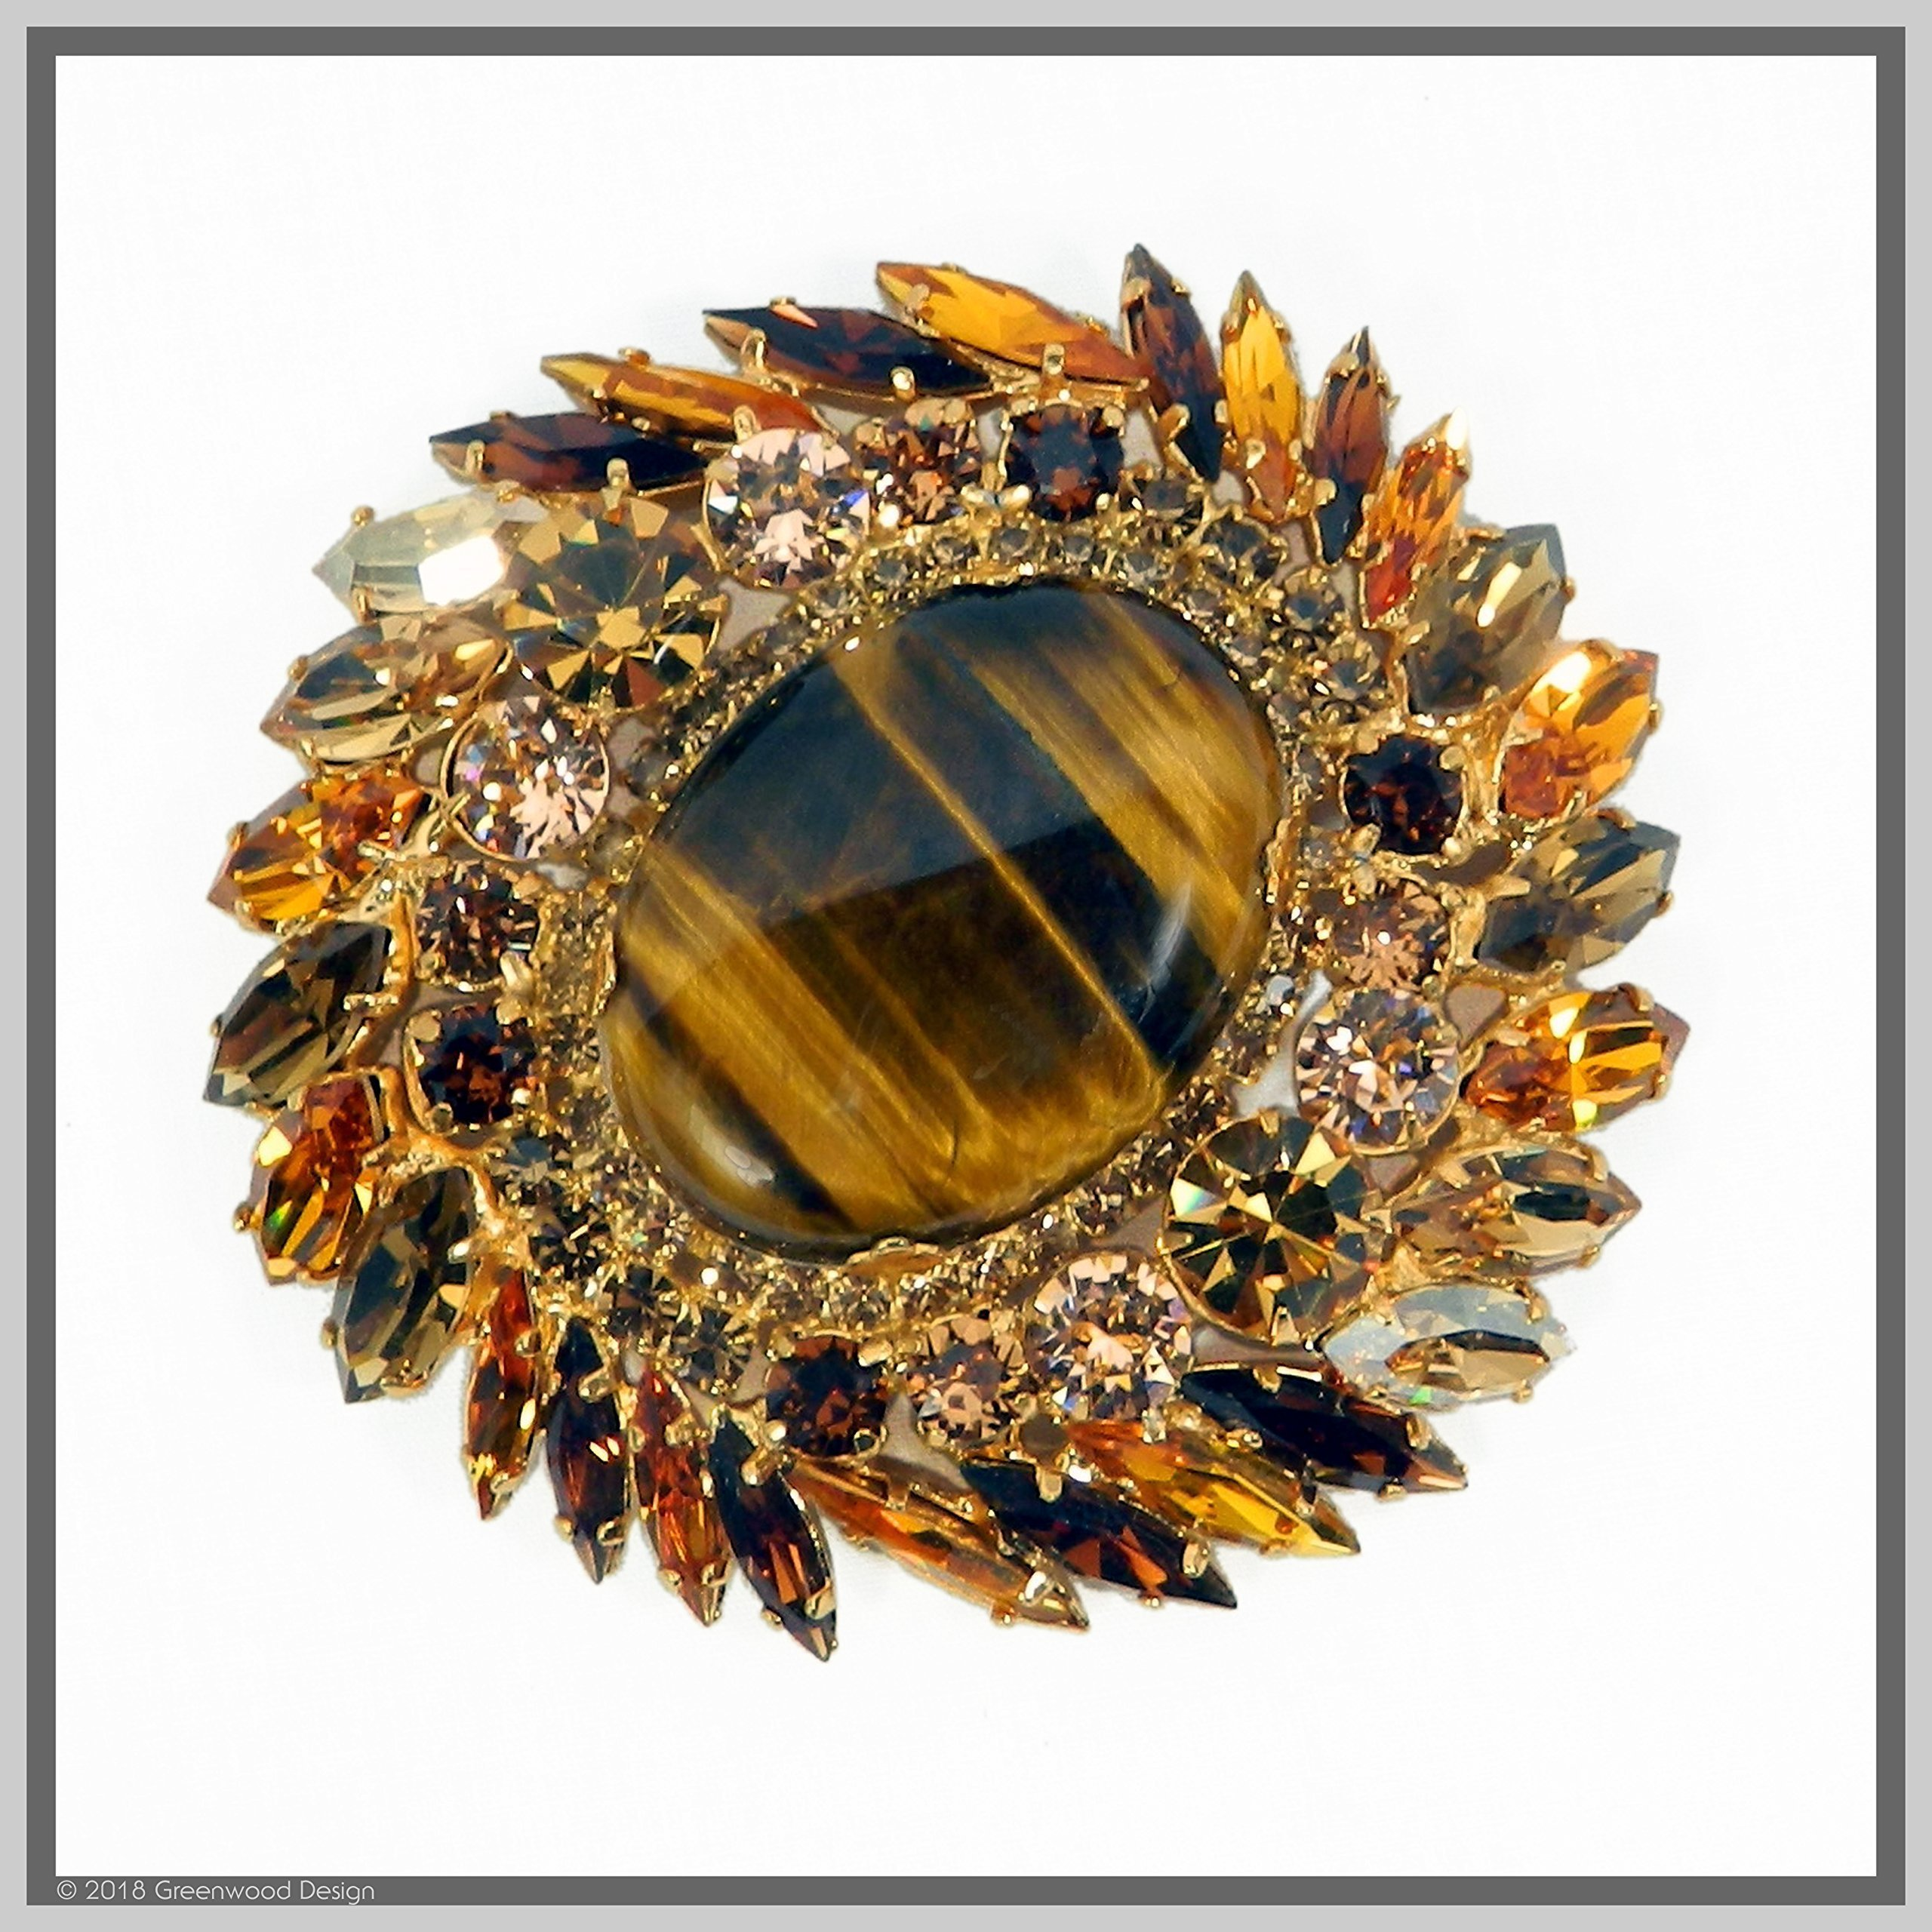 Hand Made Designer Jewelry Art Tiger Eye Brooch Pin with Swarovski Stones Gold Plated